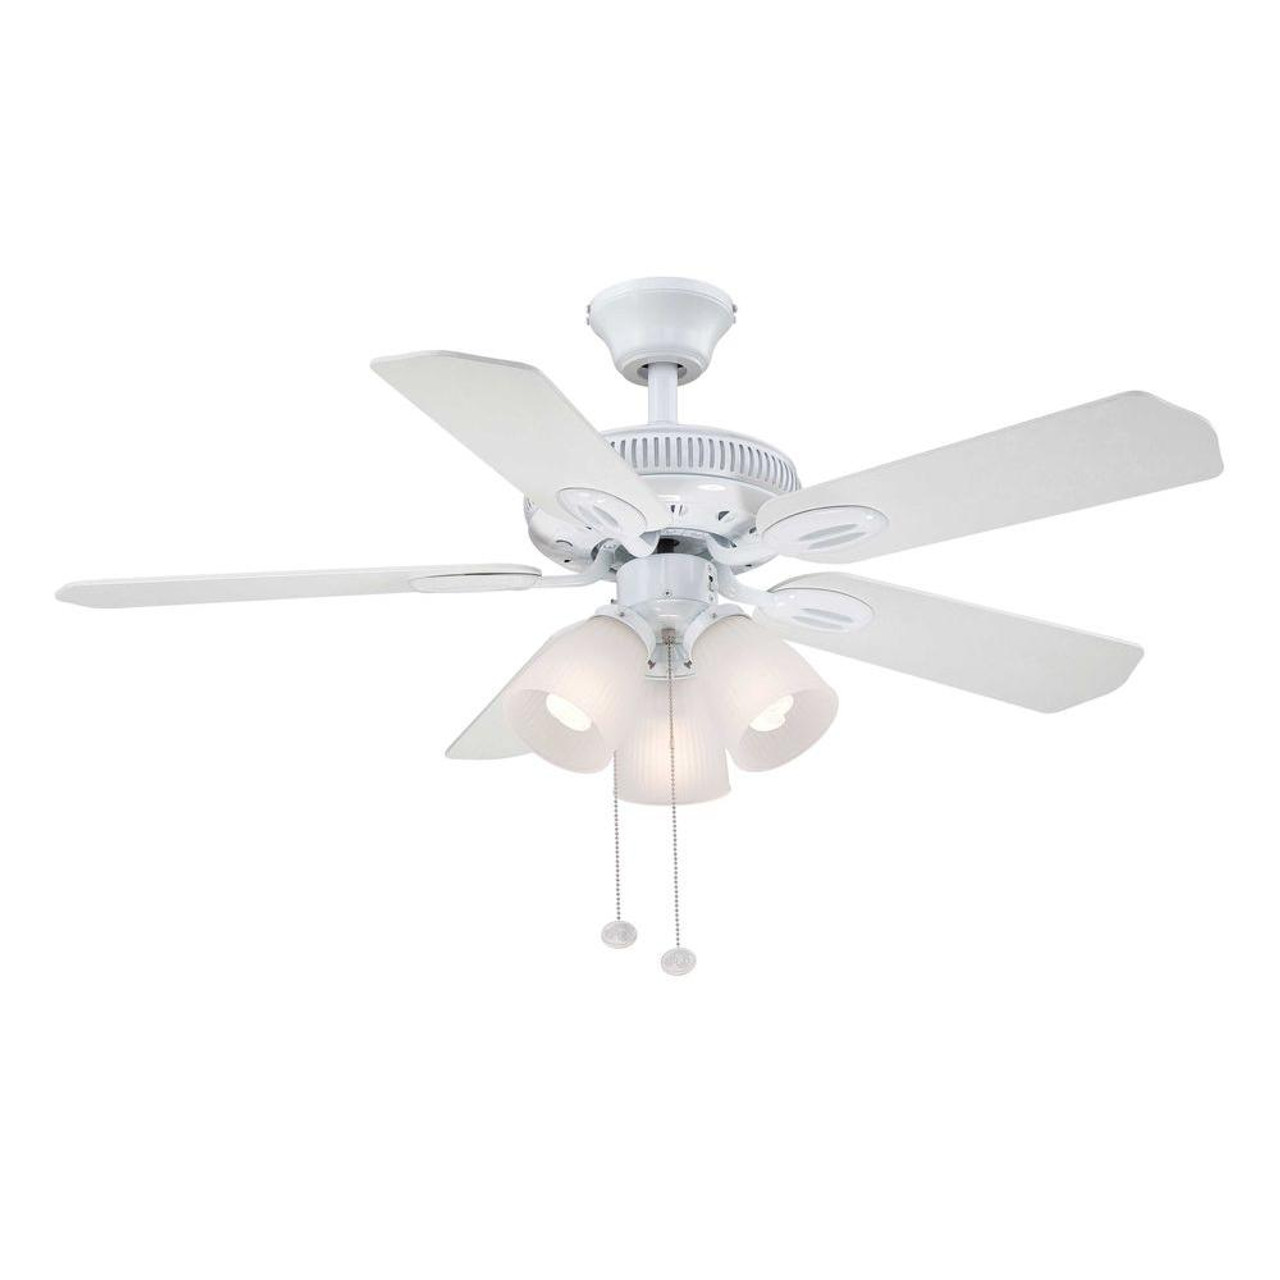 Hampton Bay Glendale 42 in. LED Indoor White Ceiling Fan with Light Kit